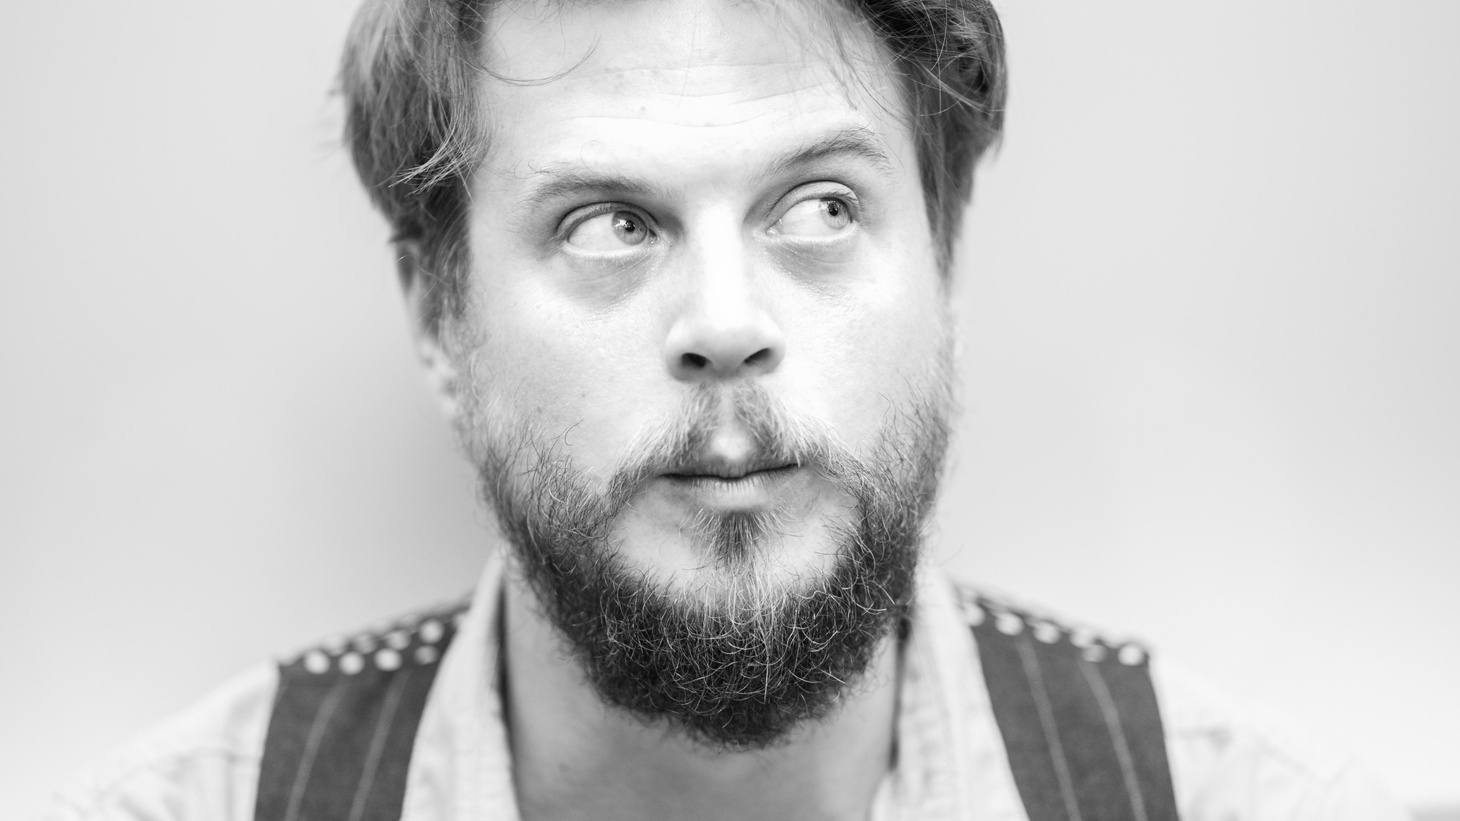 Marco Benevento is a fixture on the NY jazz scene. Though he's best known as a talented multi-instrumentalist, his fifth album has him exploring lyrics and melodies on another level.